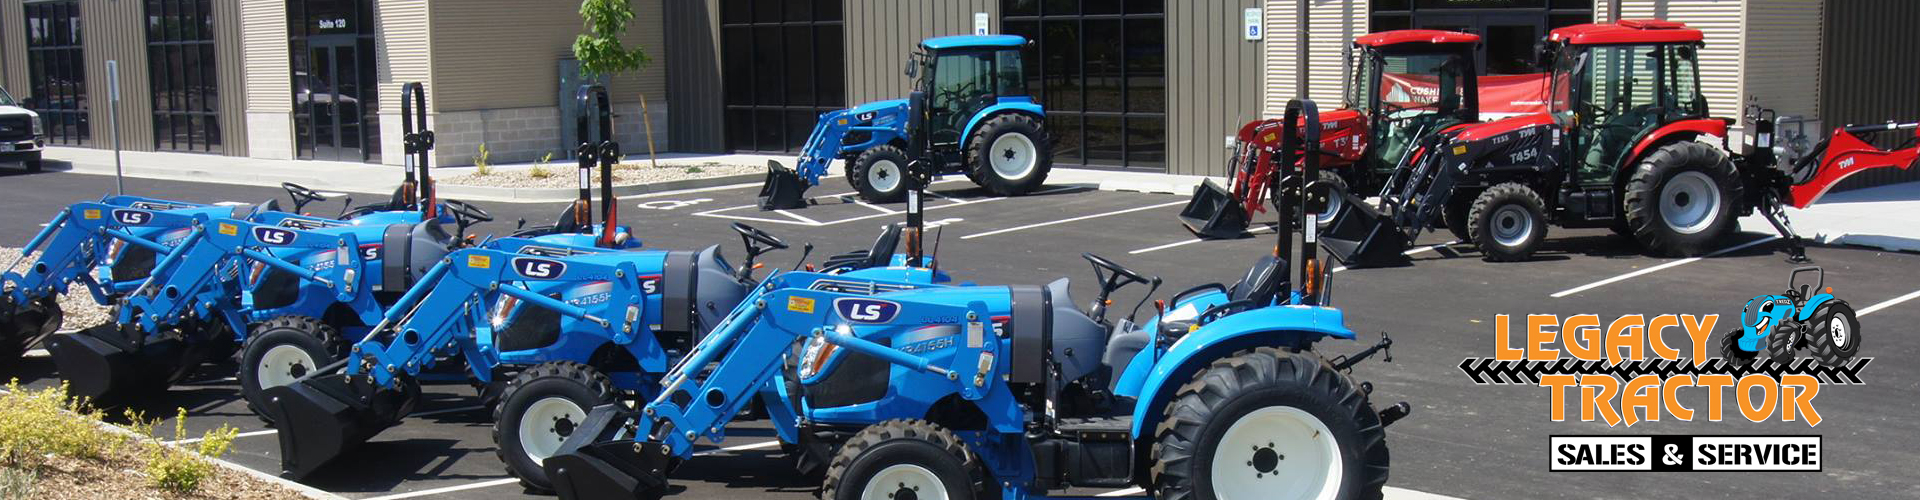 TYM Tractors, LS Tractors, Tractor Packages, Tractor For Sale